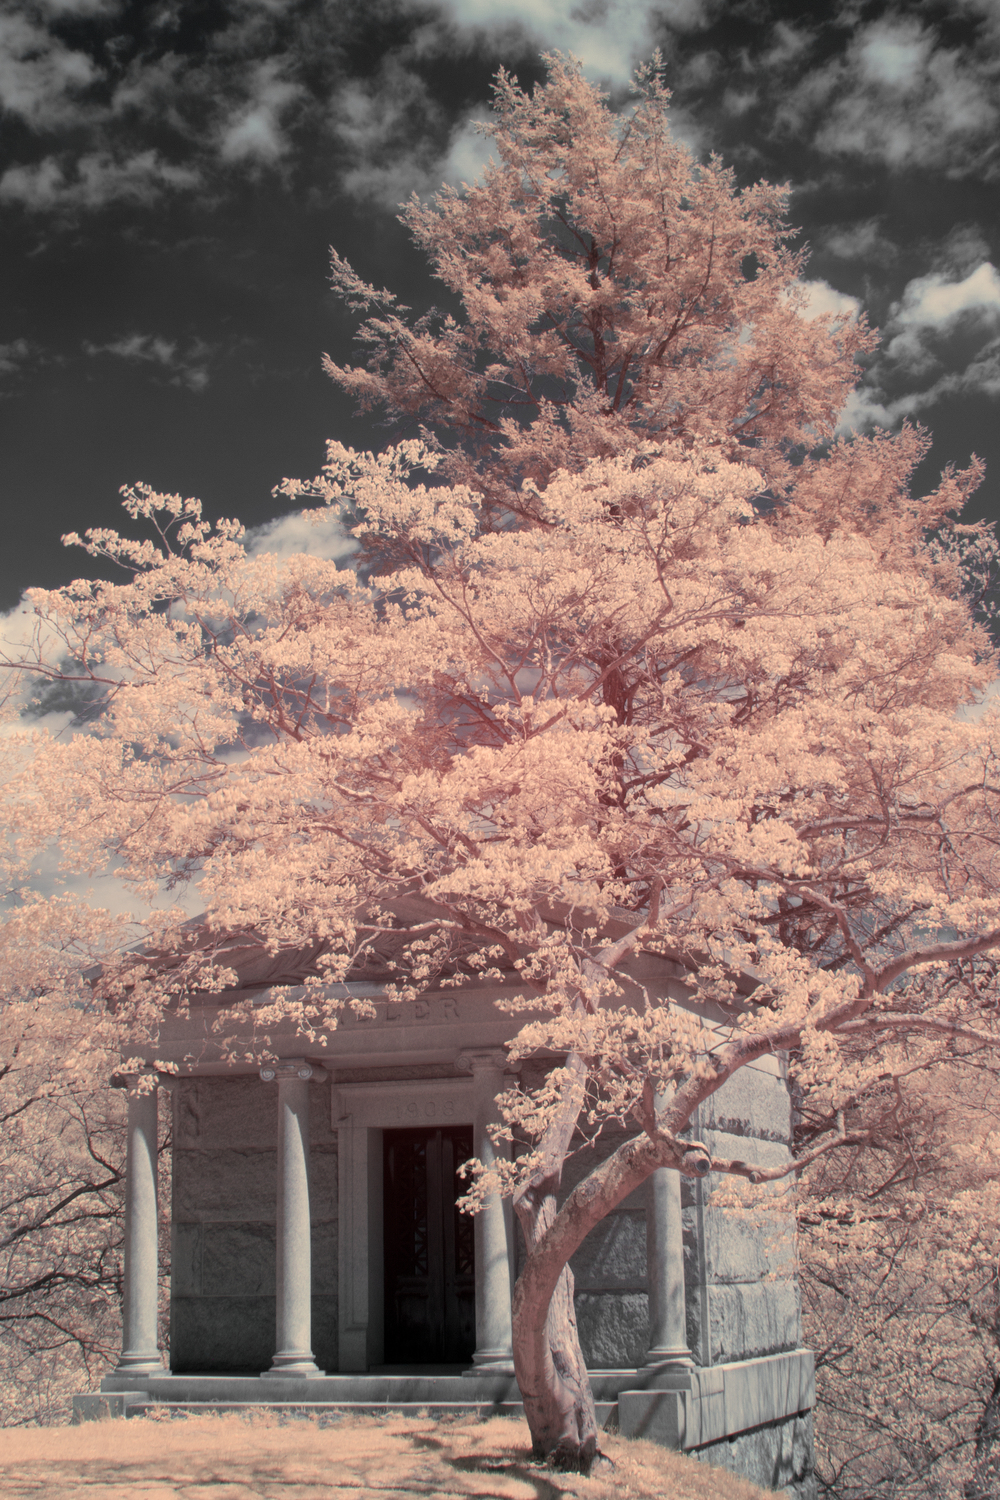 Tomb in Infrared by Patrick C. Cook